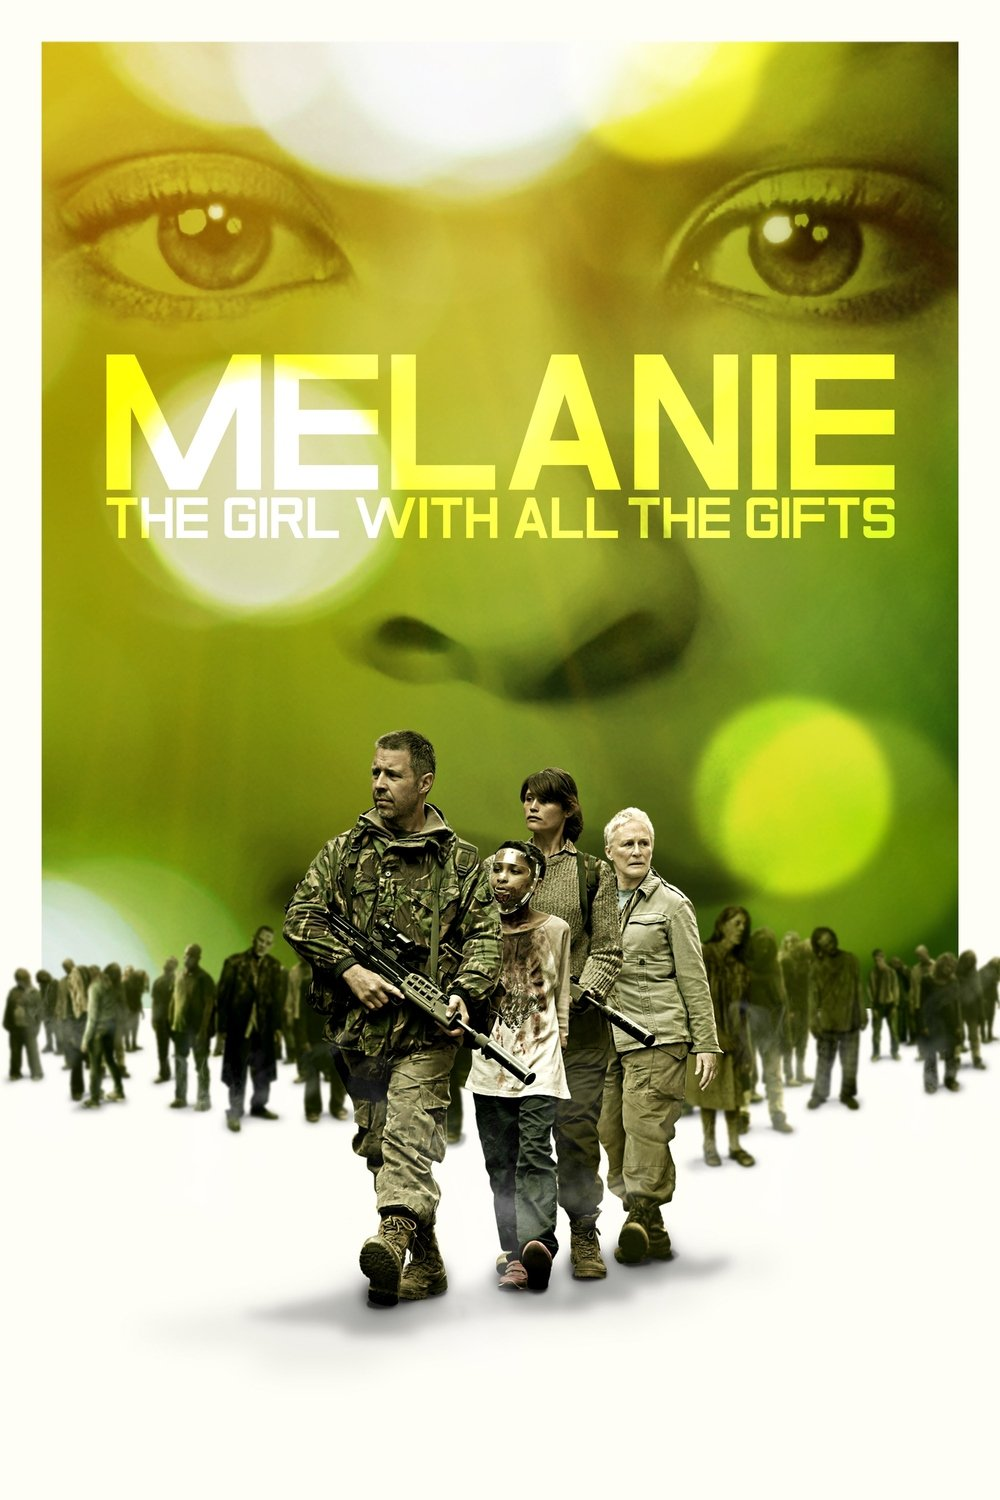 Melanie: The girl with all the gifts